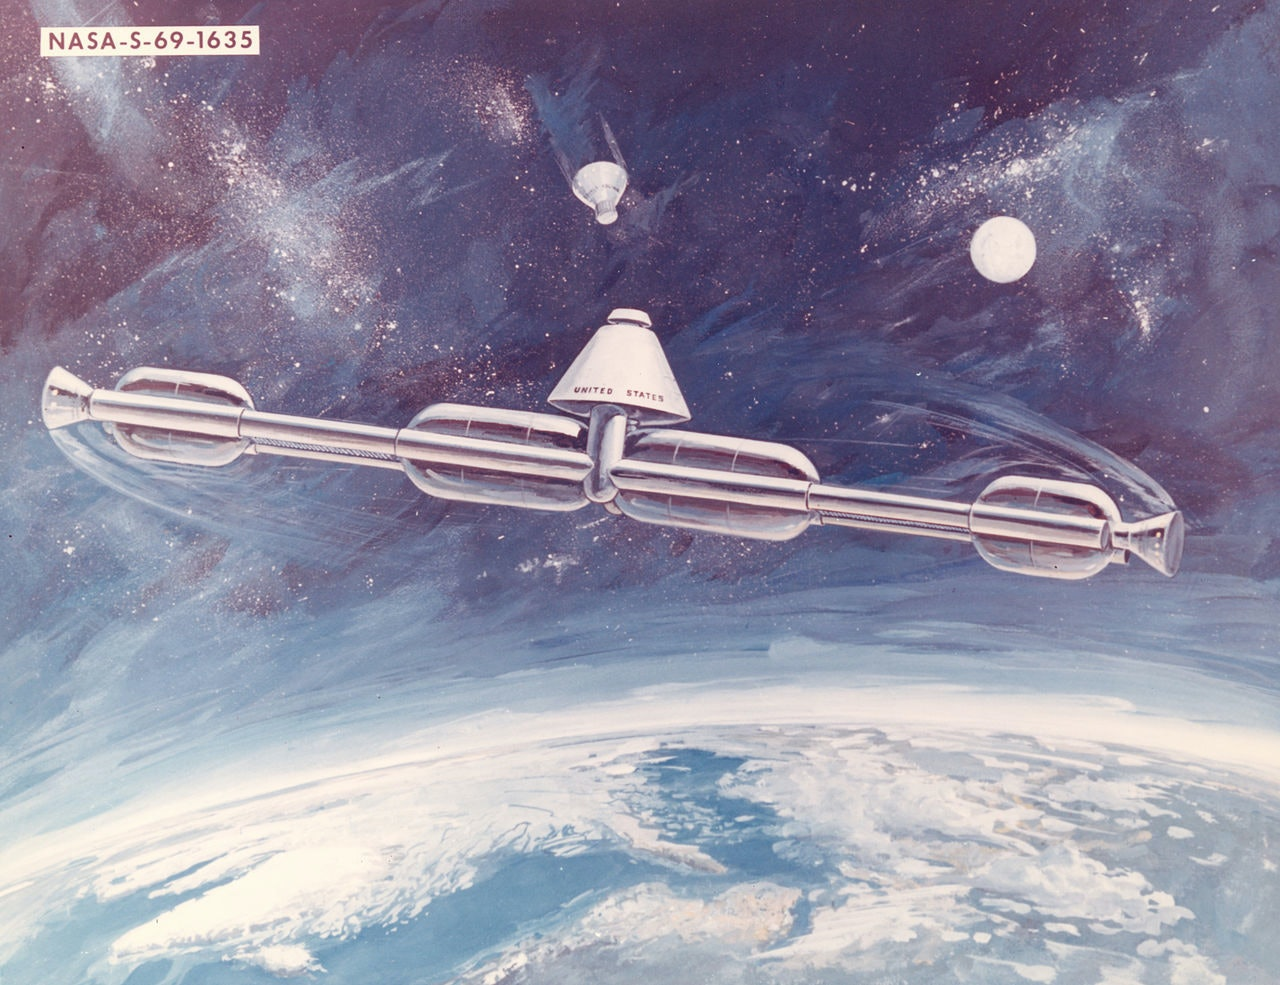 A 1969 station concept, to be assembled on-orbit from spent Apollo program stages.The station was to rotate on its central-axis to produce artificial gravity. The majority of early space station concepts created artificial gravity one way or another in order to simulate a more natural or familiar environment for the health of the astronauts.